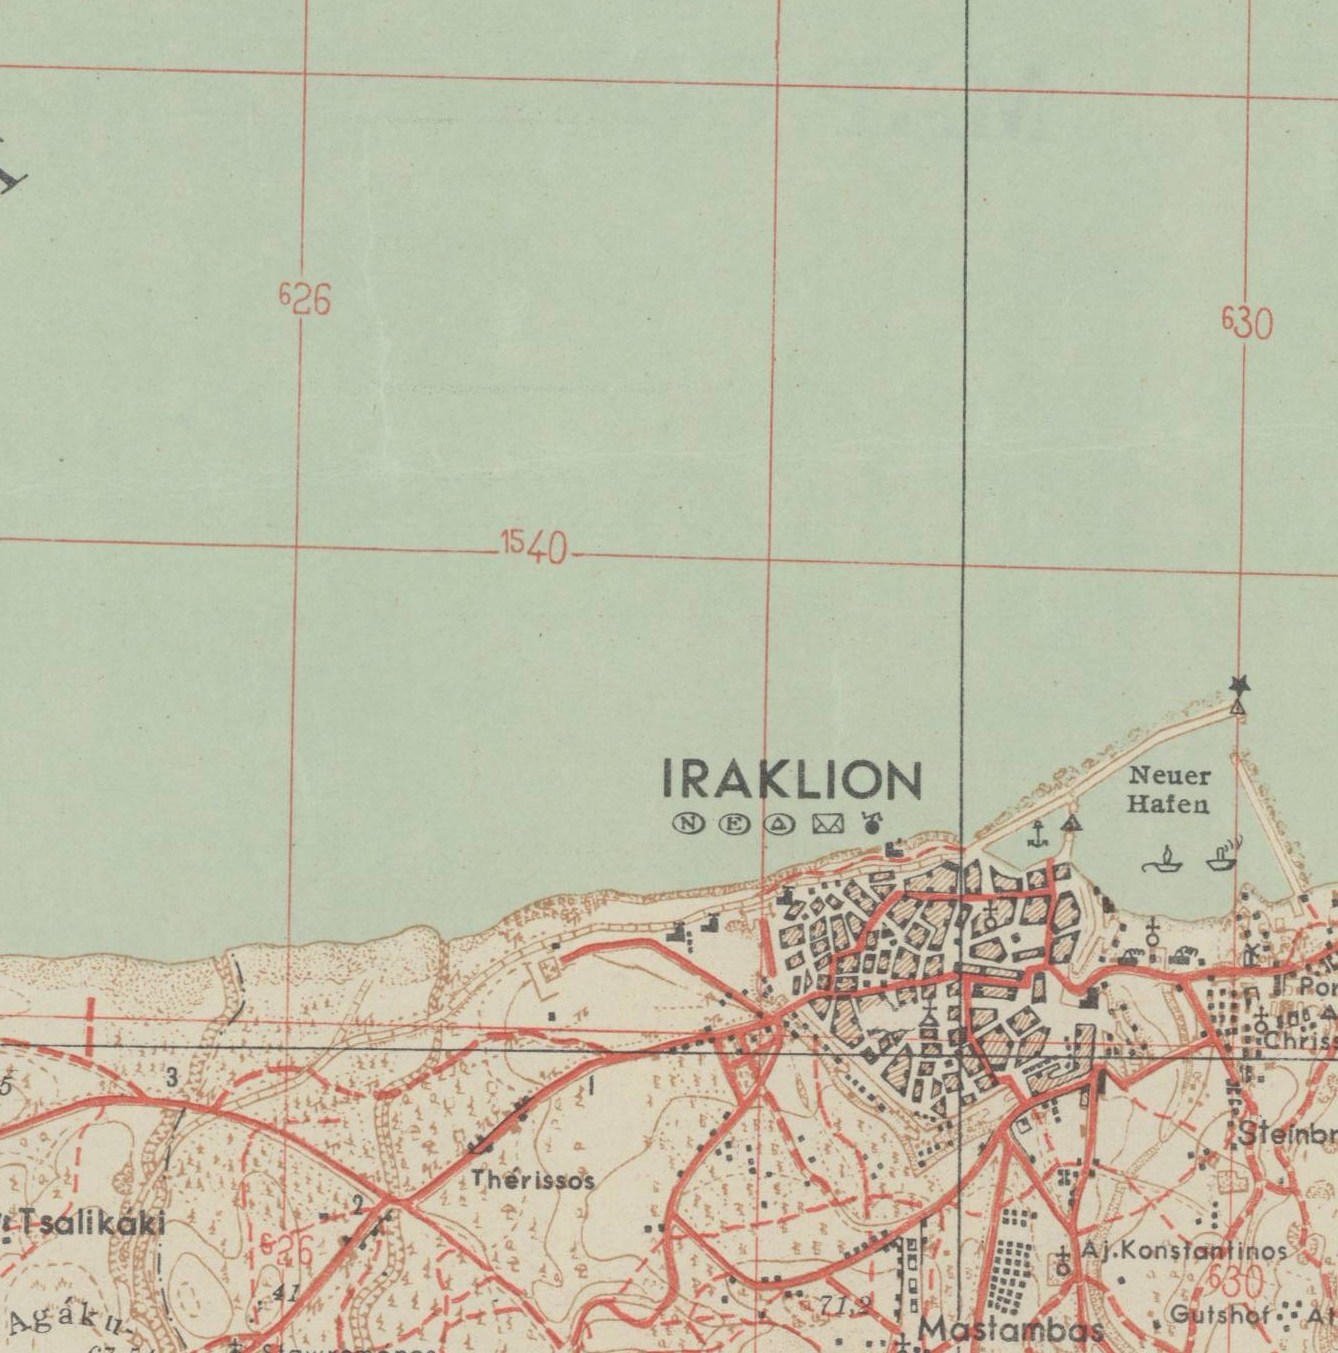 Close up showing Iraklion and surrounding areas